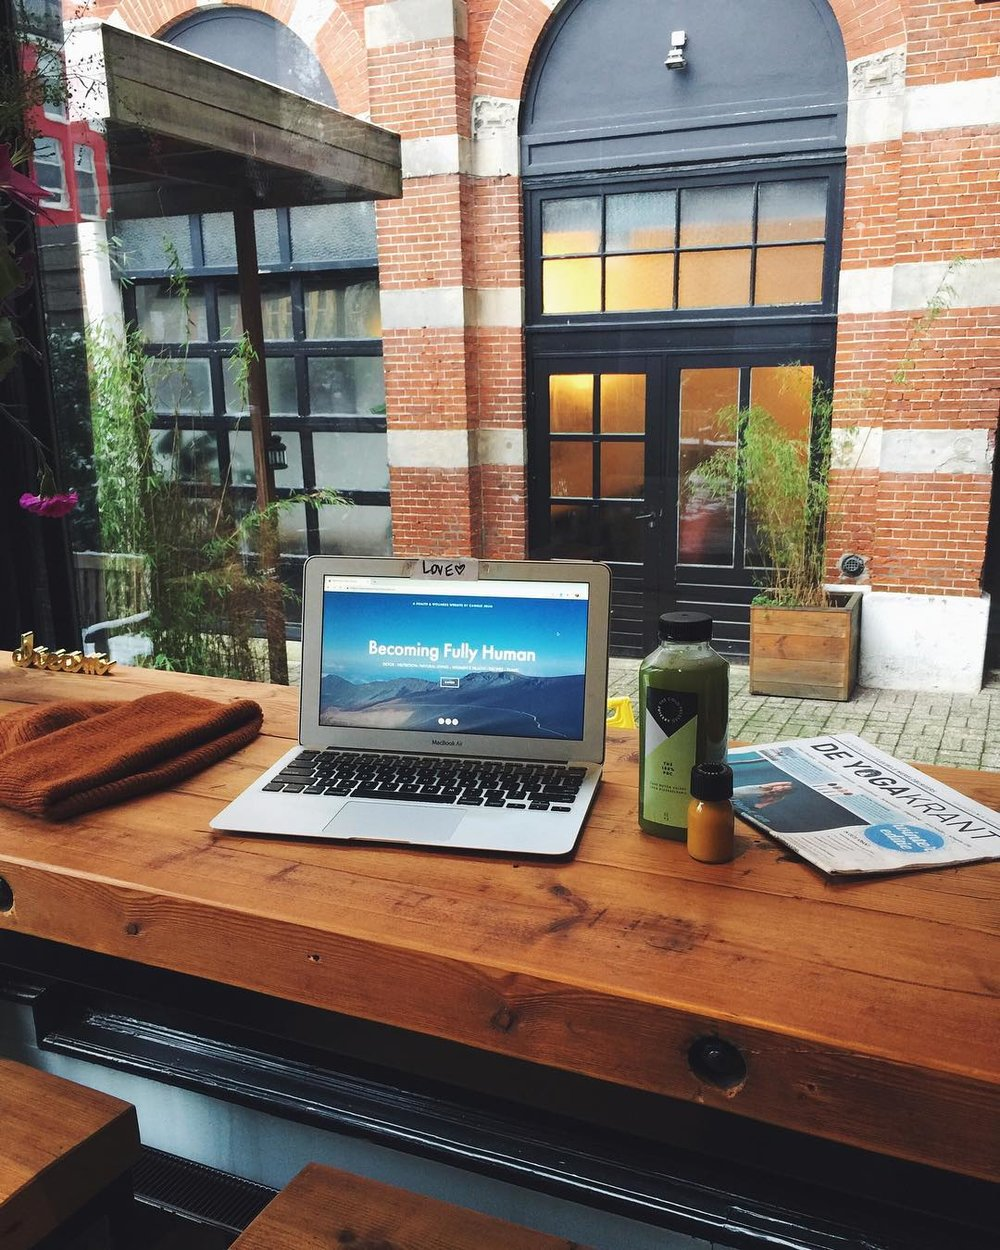 Getting some work done in the lobby of a yoga studio in Amsterdam, before a hot yoga class.